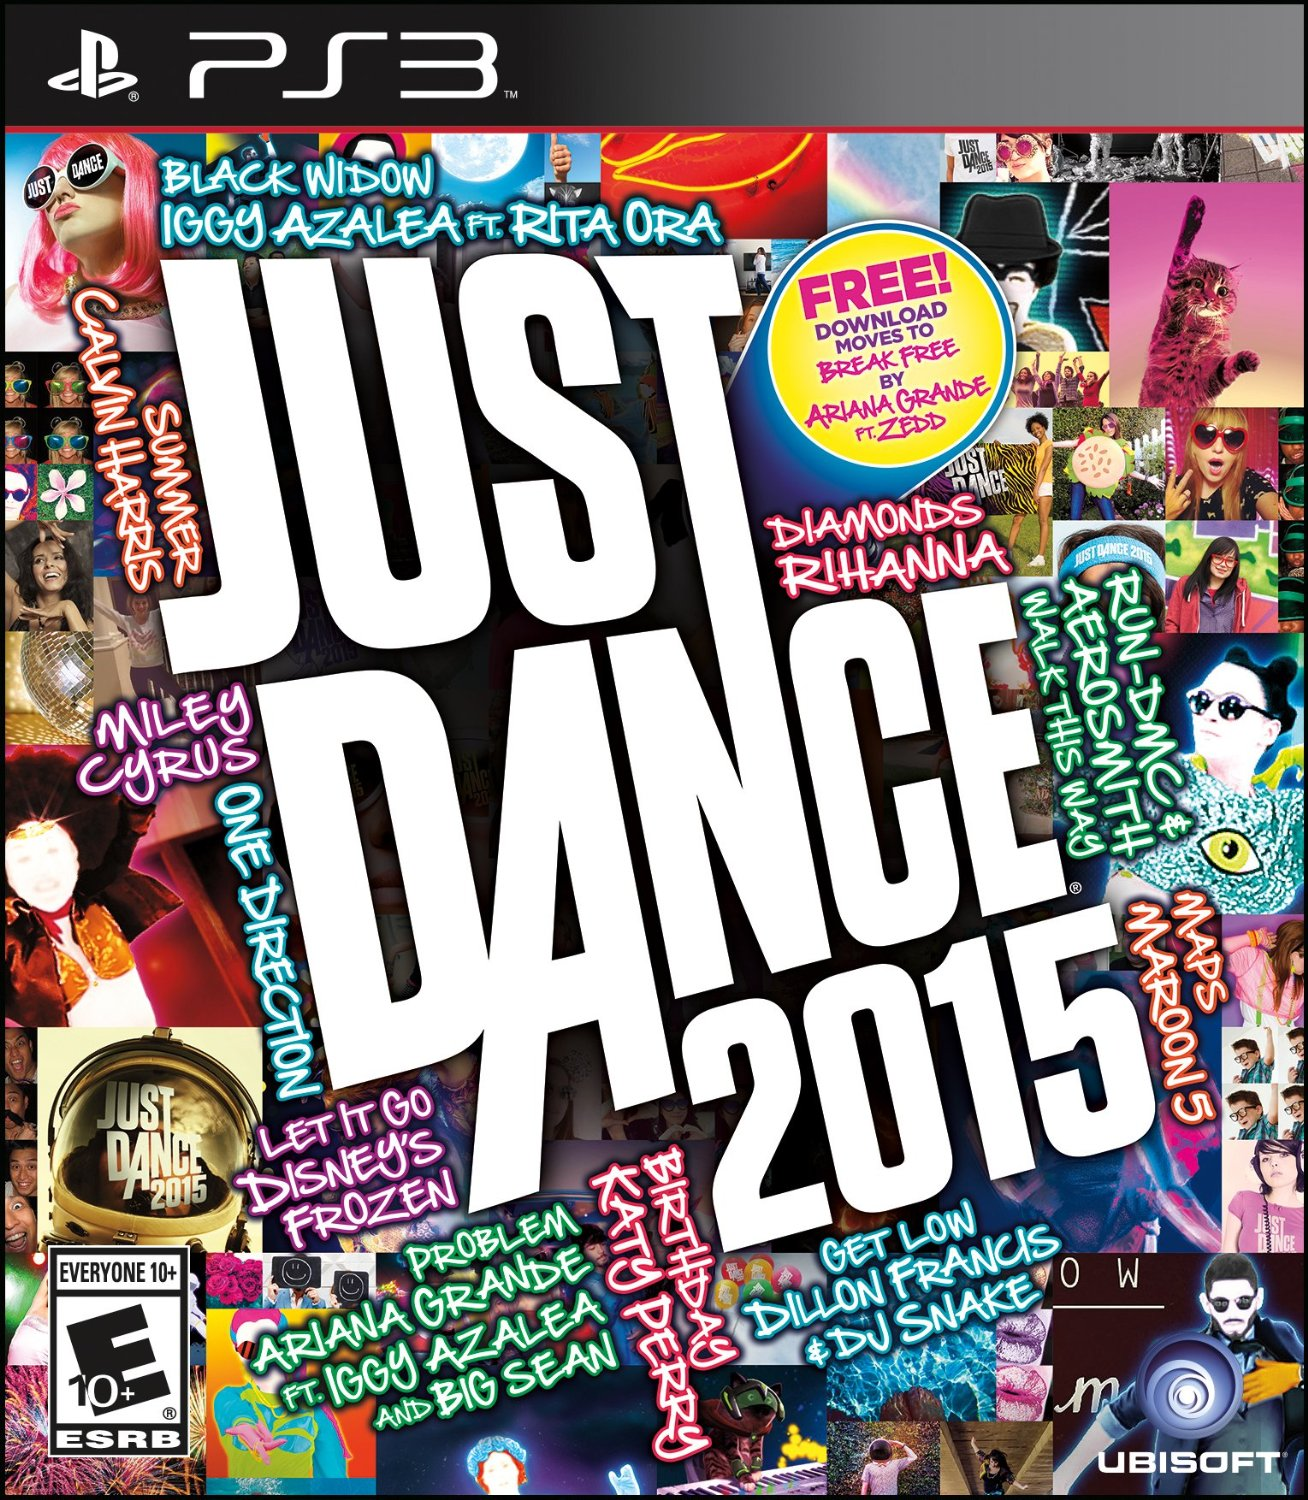 Ps32015cover.jpg